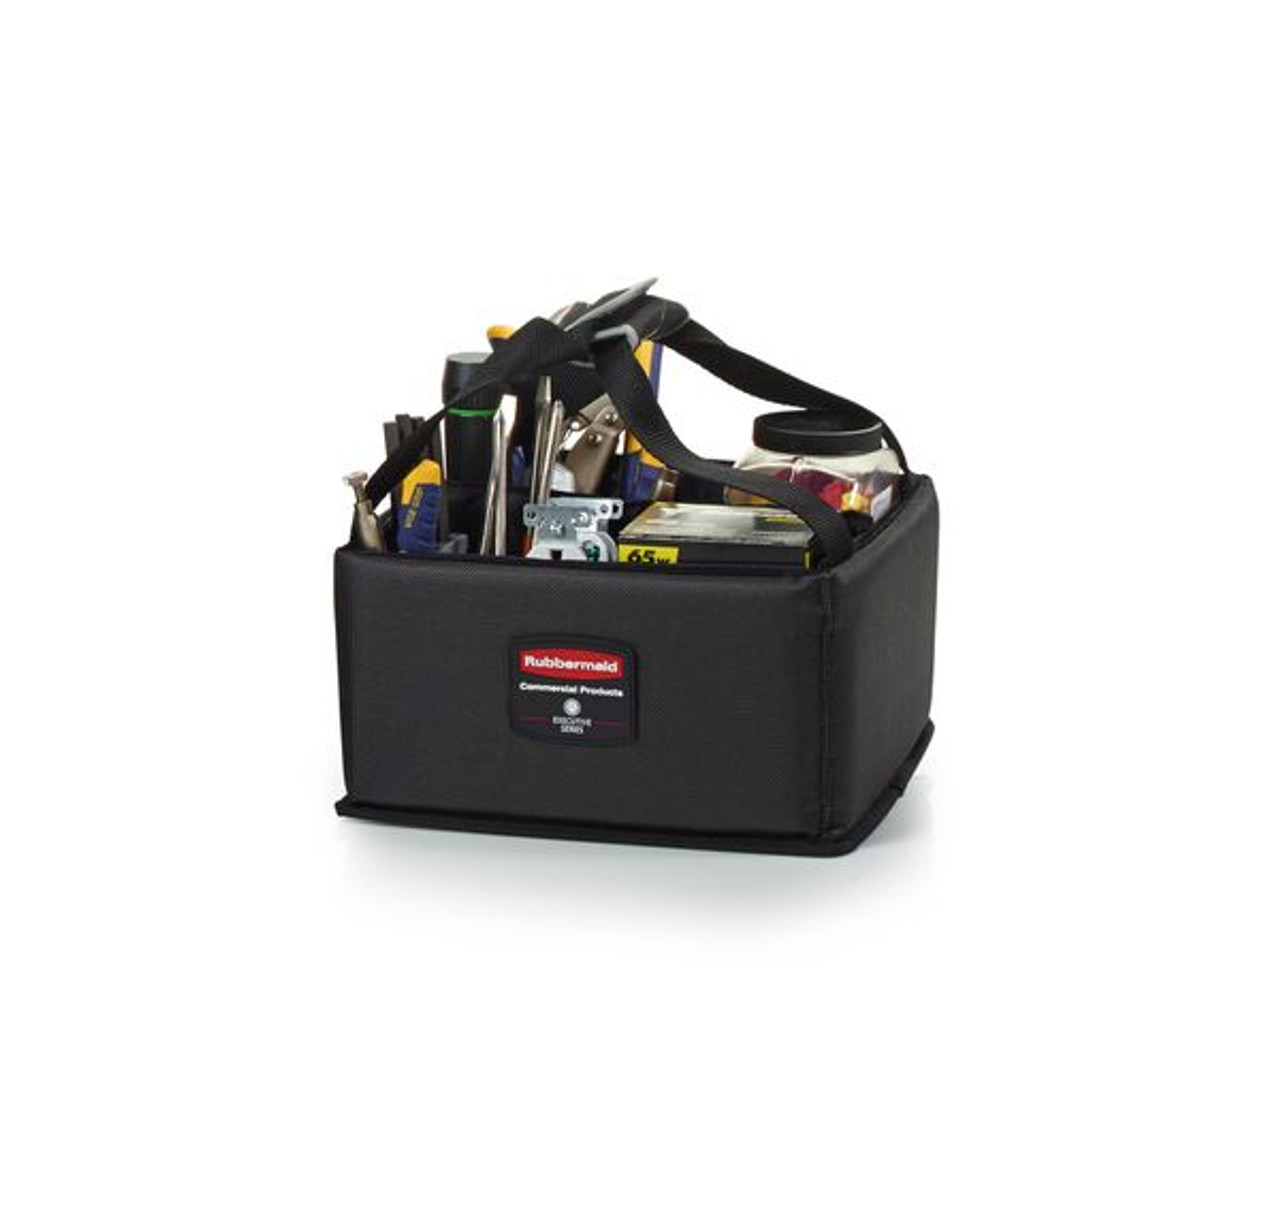 Rubbermaid Quick Cart Caddy Small (Replacement For Small Quick Carts)